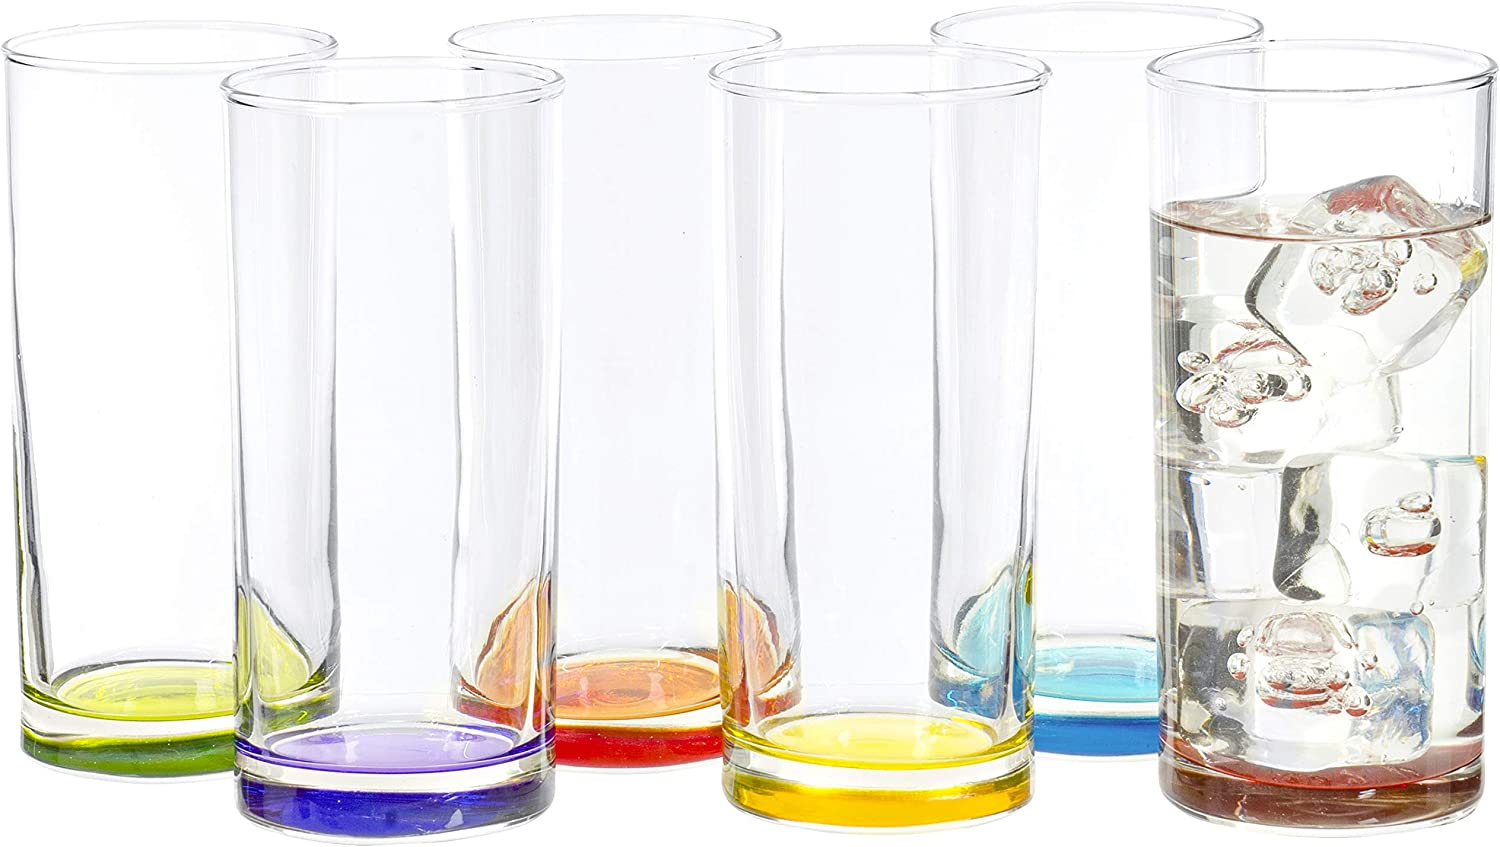 Highball Tumbler Clear Multi Colored Base Drinking Glass for Water, Juice, Beer, Whiskey, and Cocktails, 9.25 Ounce - Set of 6